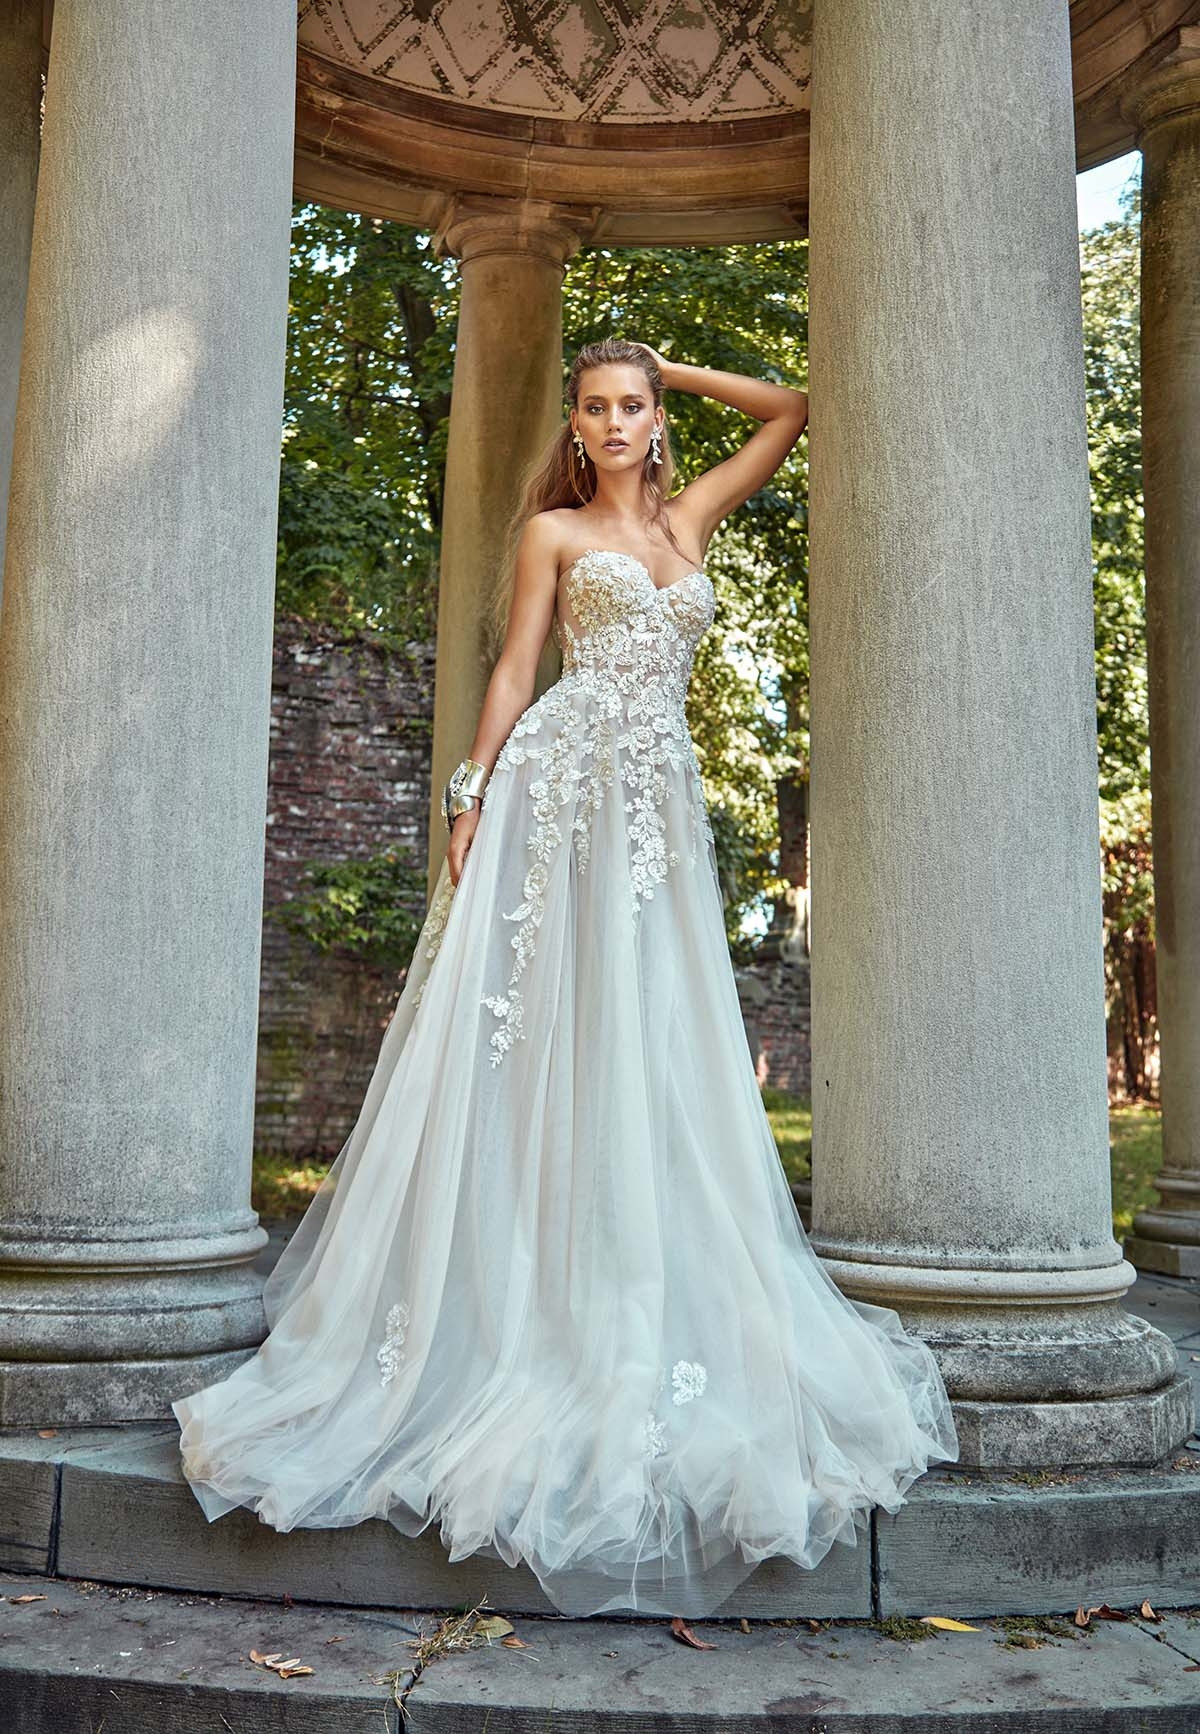 Wedding Dresses by Galia Lahav - Weddingwire.ca